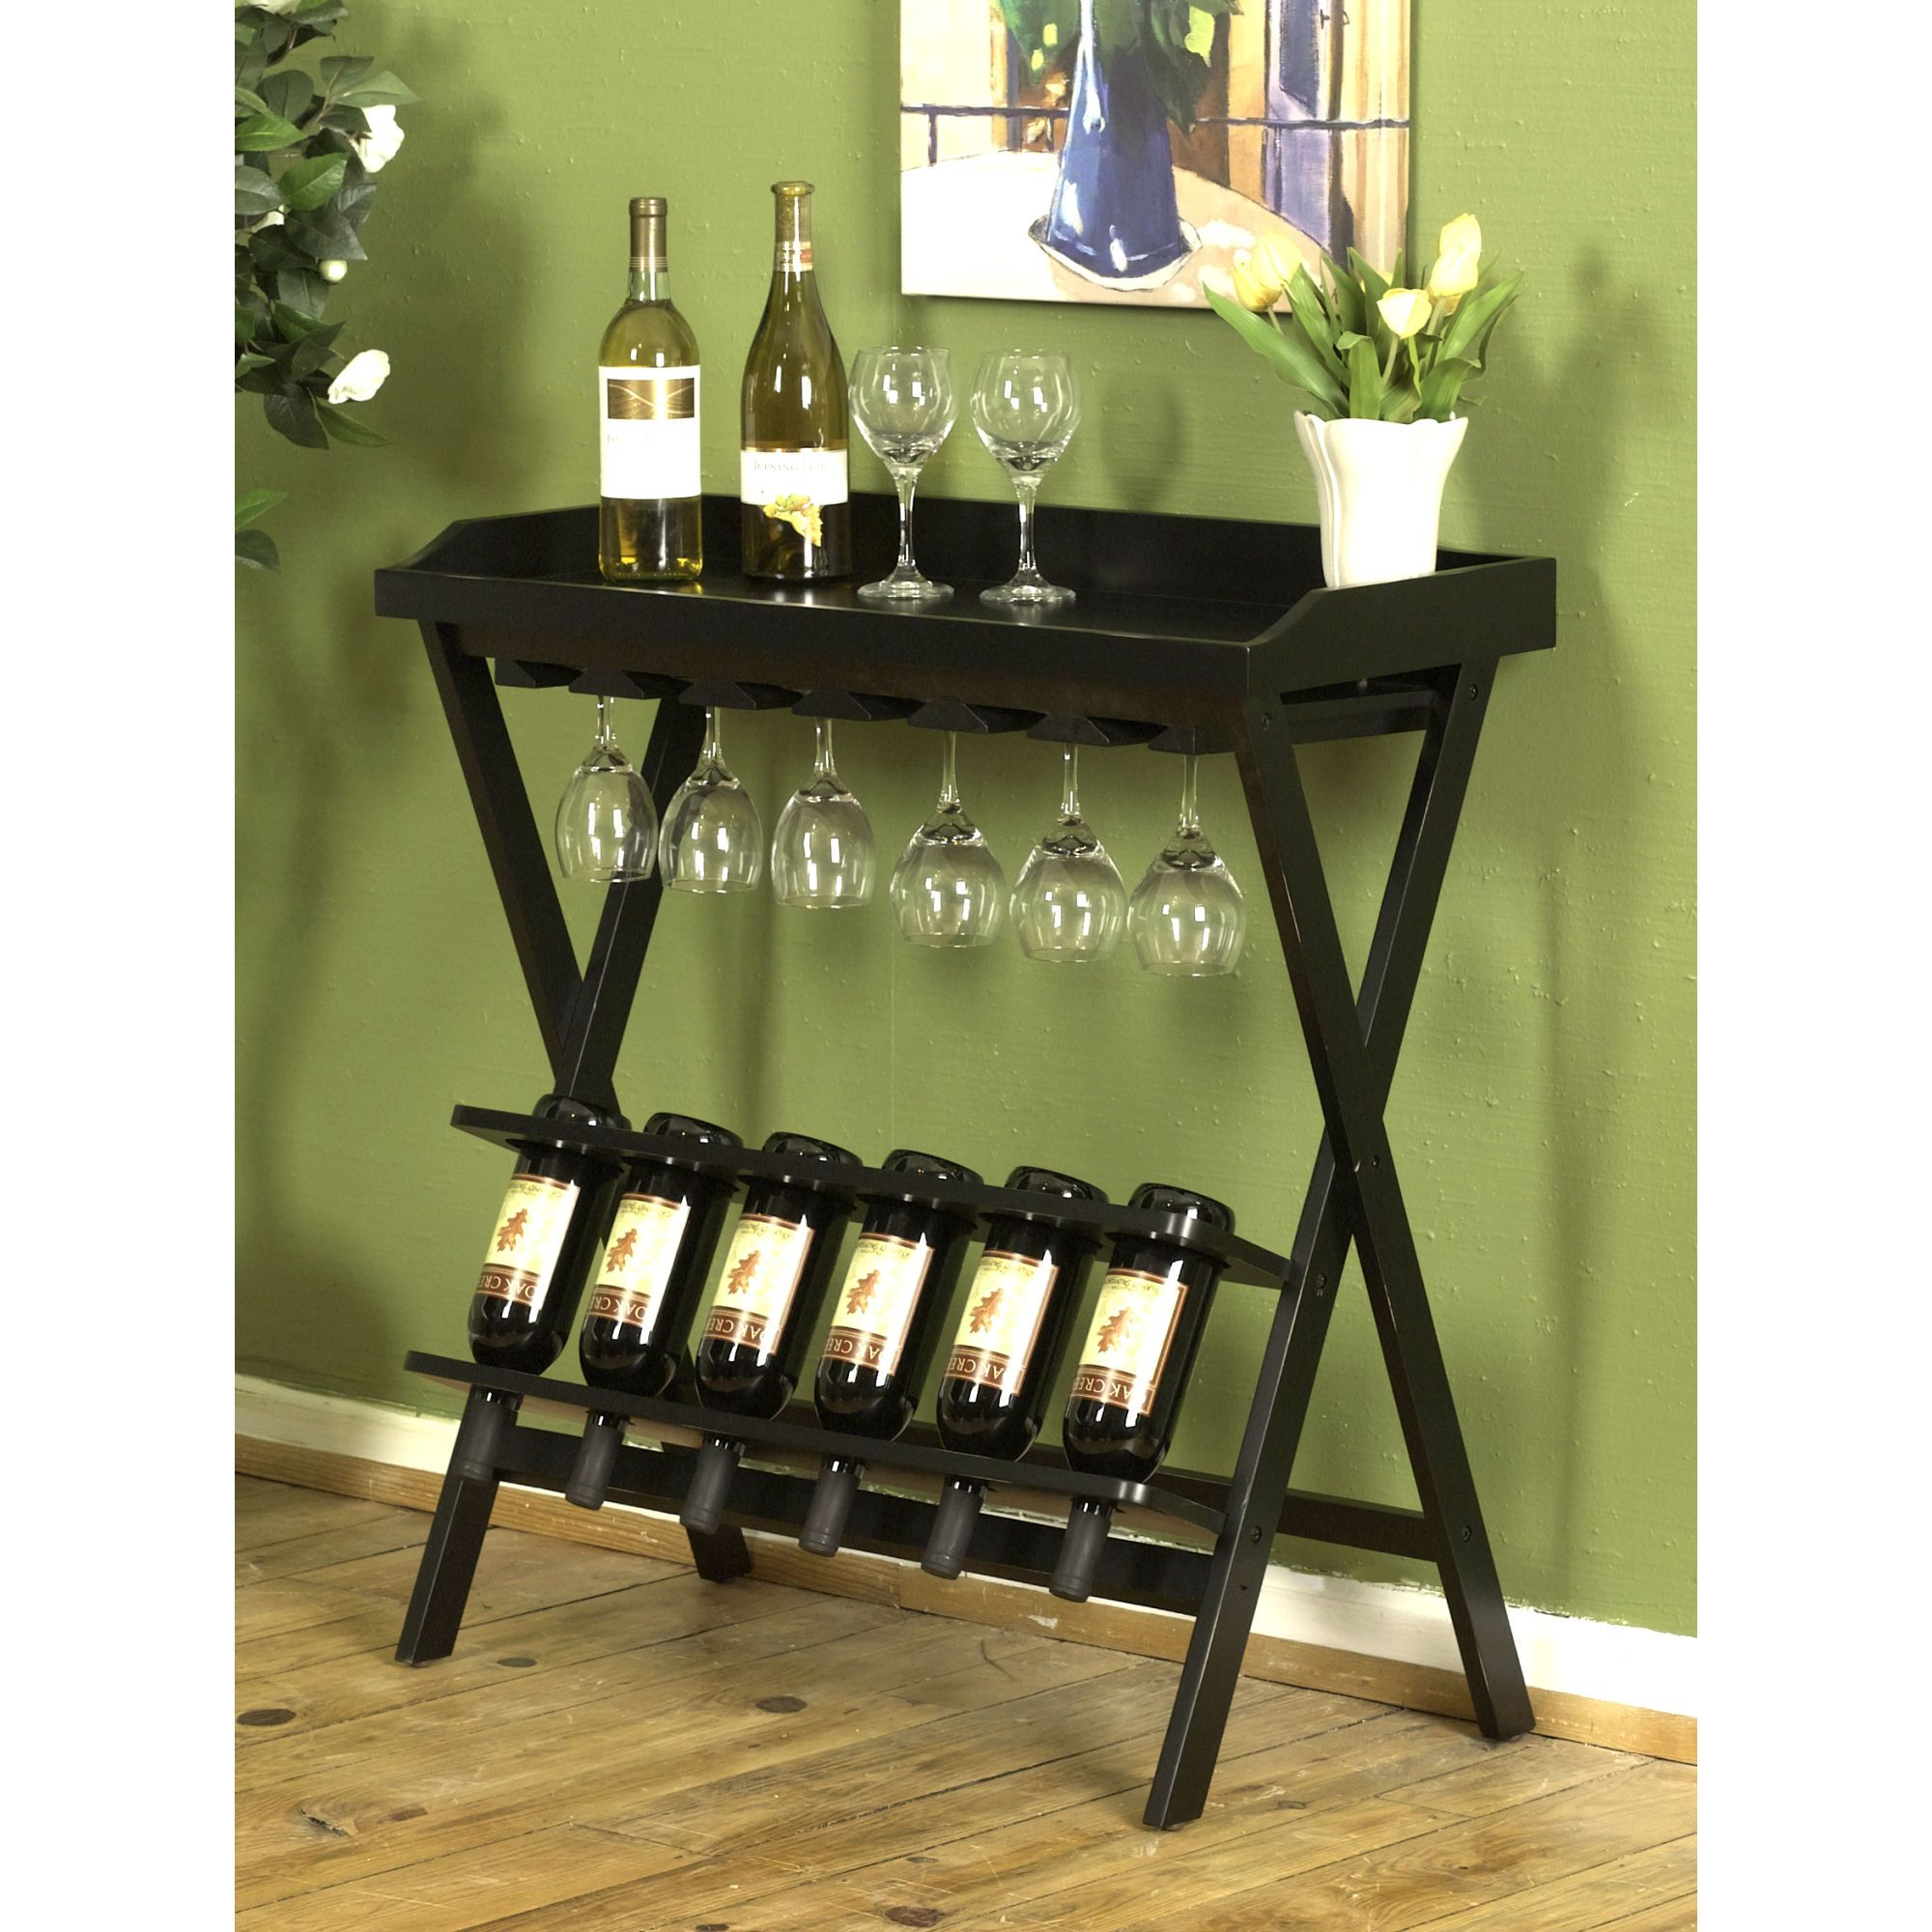 Small Wine Stand Display Your Wine Selection With This Fantastic Wine Rack